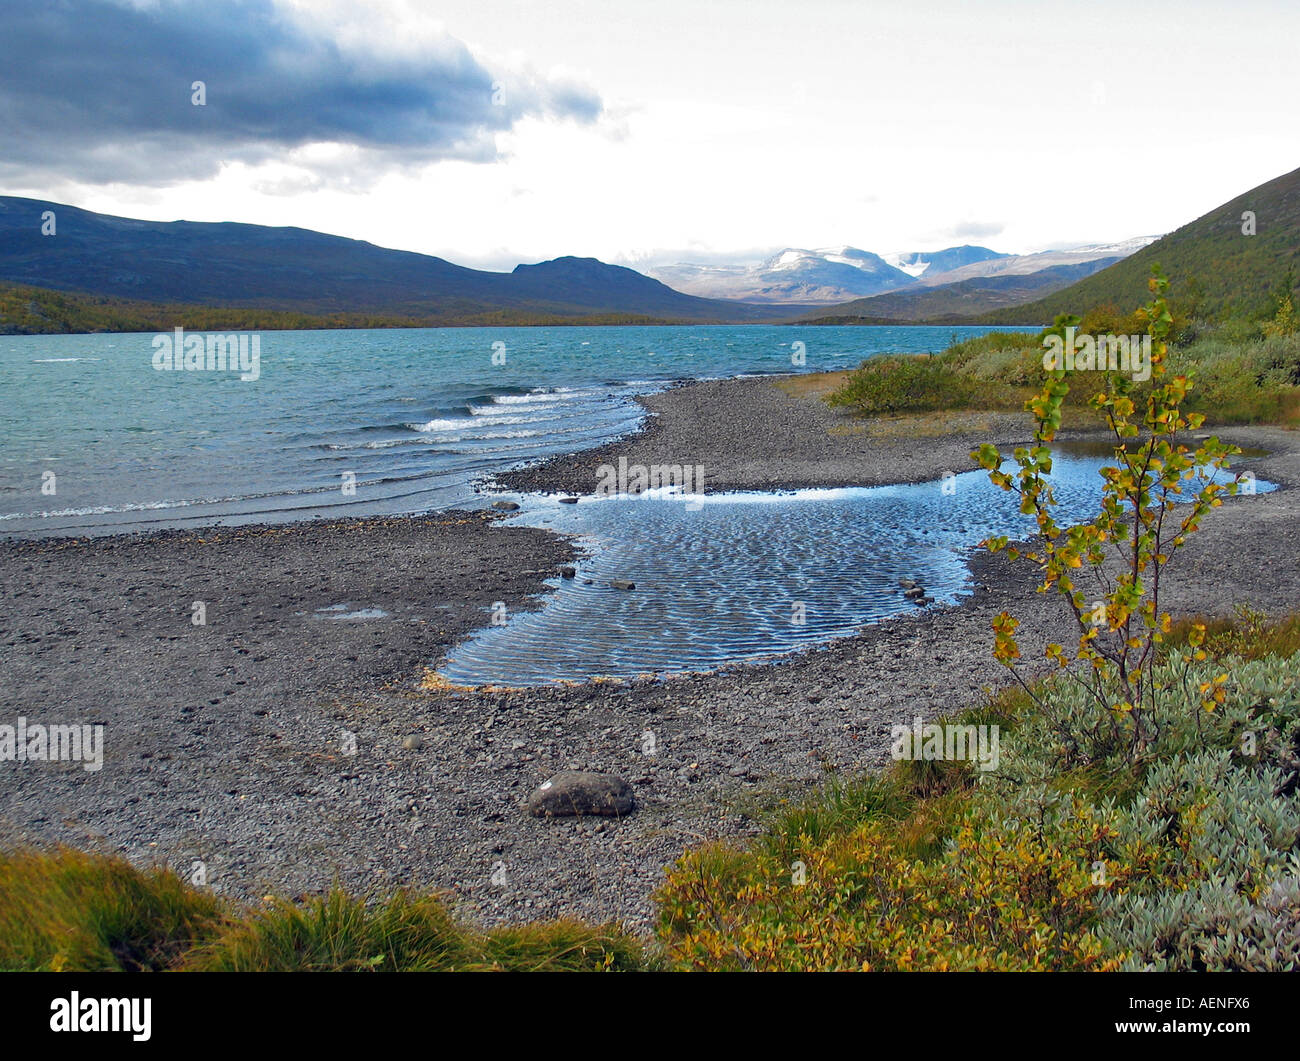 Lake on valdresflya during turning of the seasons / Indian summer, Valdresflya, Jotunheimen, Norway - Stock Image